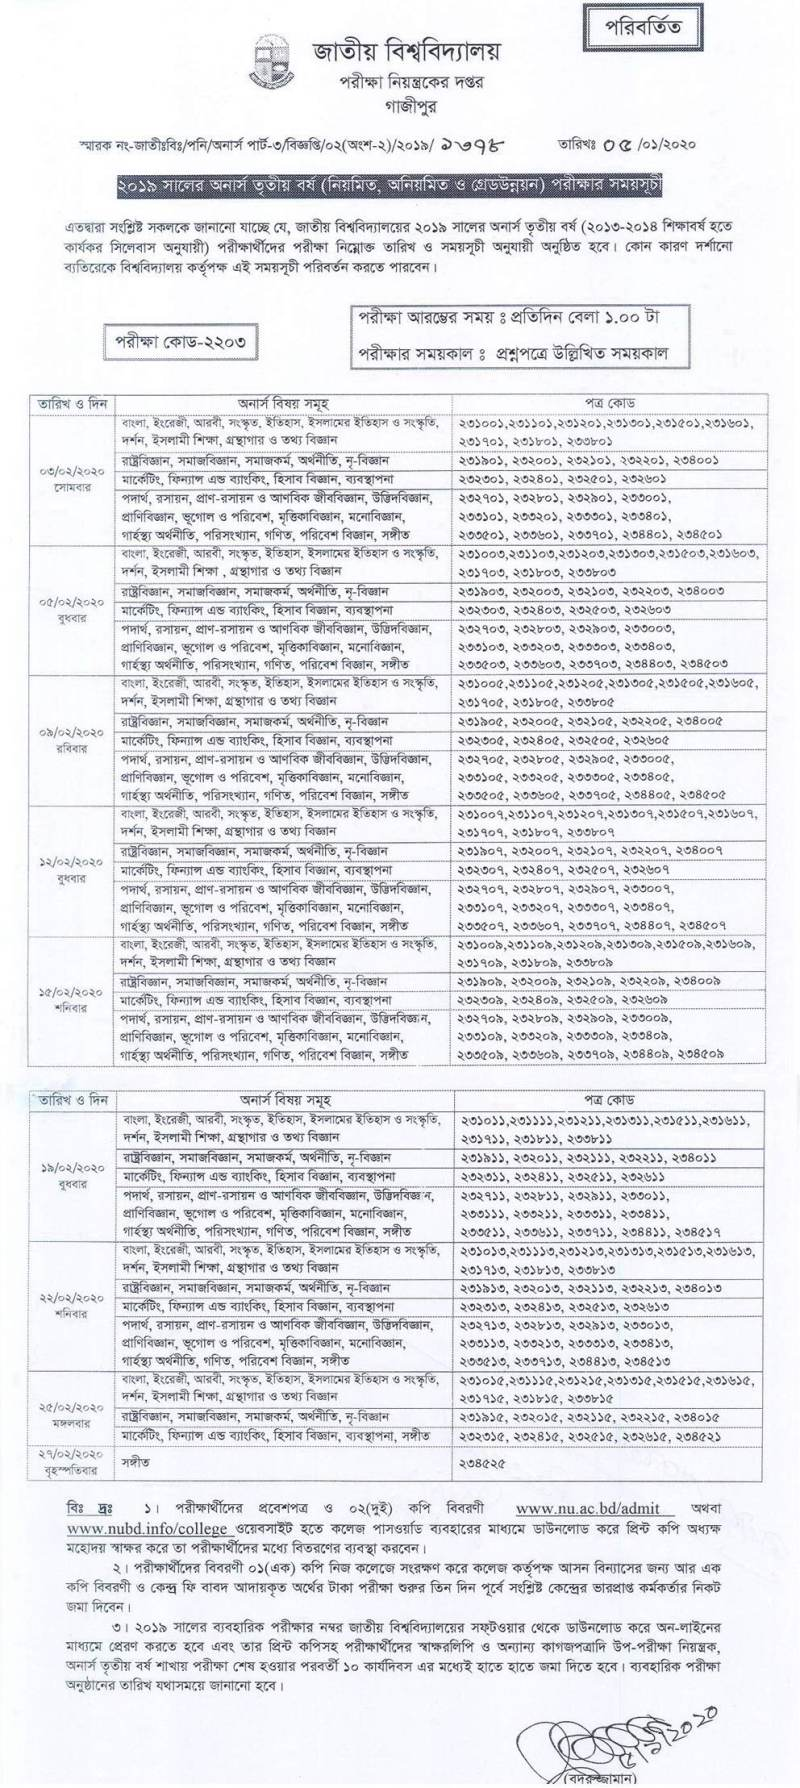 NU Honours 3rd Year Exam Routine 2019